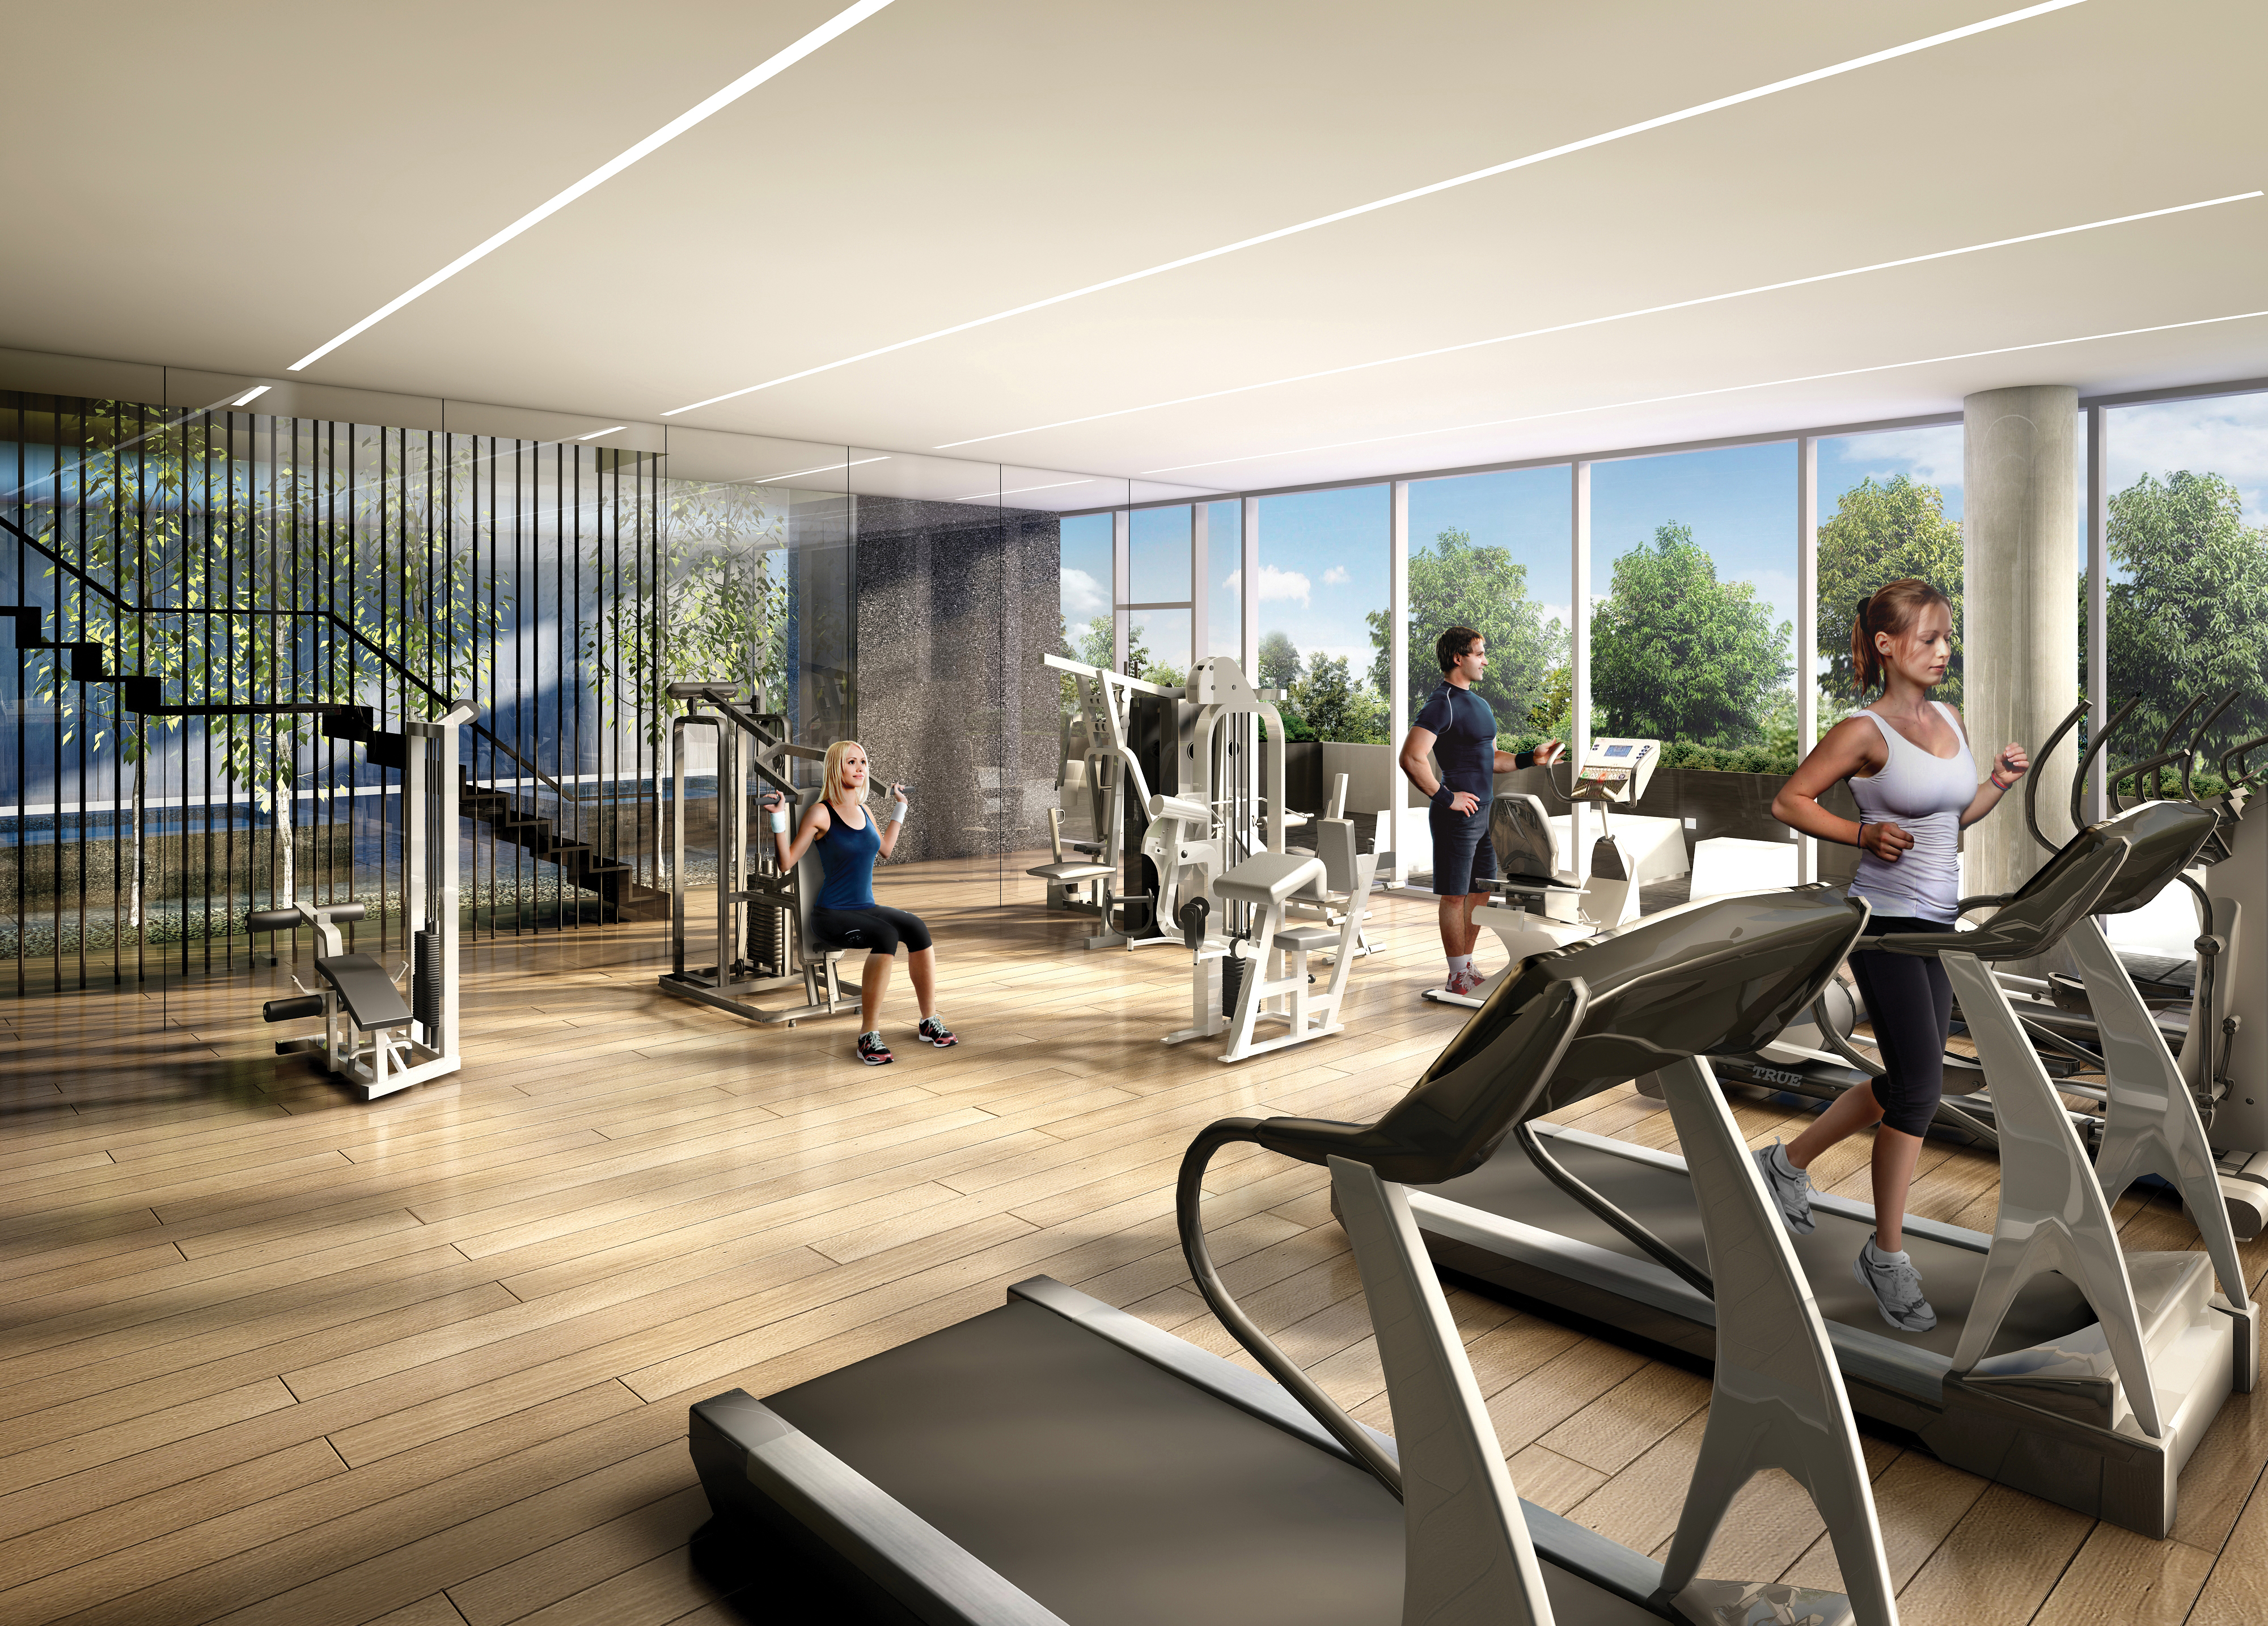 """Schedule in some """"me time"""" at the Fitness Centre with state-of-the-art cardio equipment and strength-training free weights"""